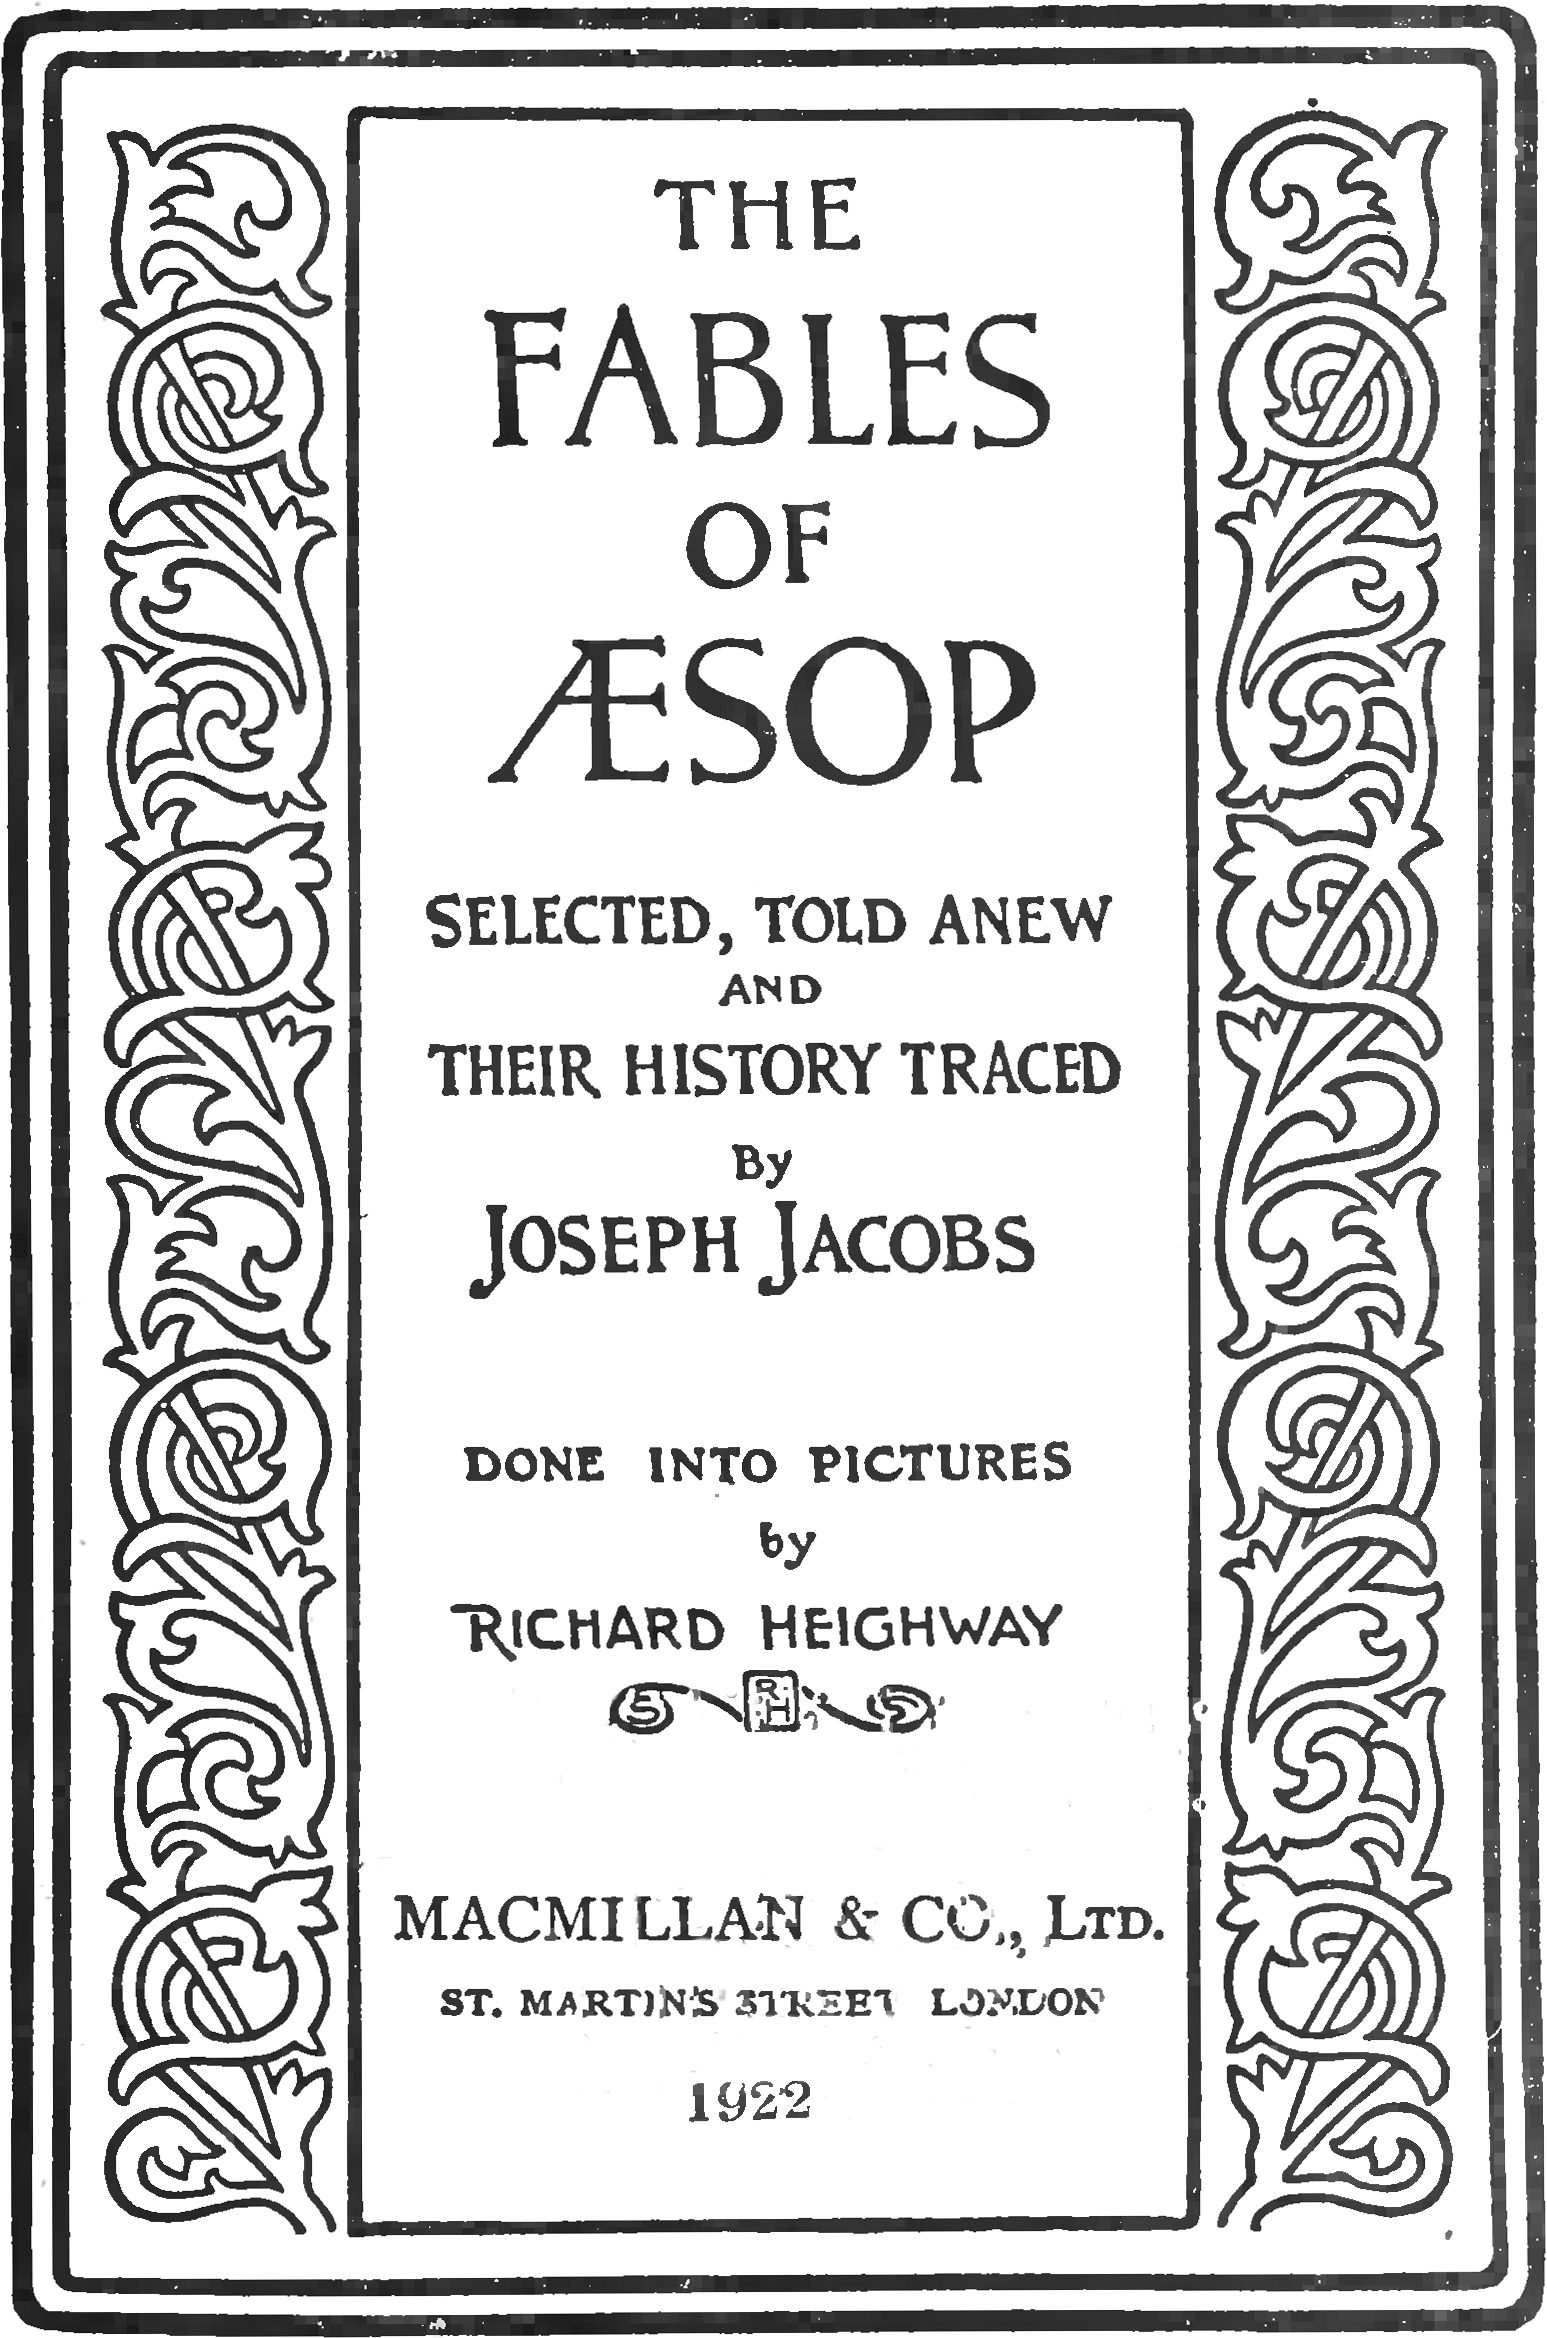 alt=THE FABLES OF ÆSOP SELECTED, TOLD ANEW AND THEIR HISTORY TRACED By JOSEPH JACOBS DONE INTO PICTURES by RICHARD HEIGHWAY MACMIILLAN & CO, Ltd. ST. MARTIN'S STREET, LONDON 1922.